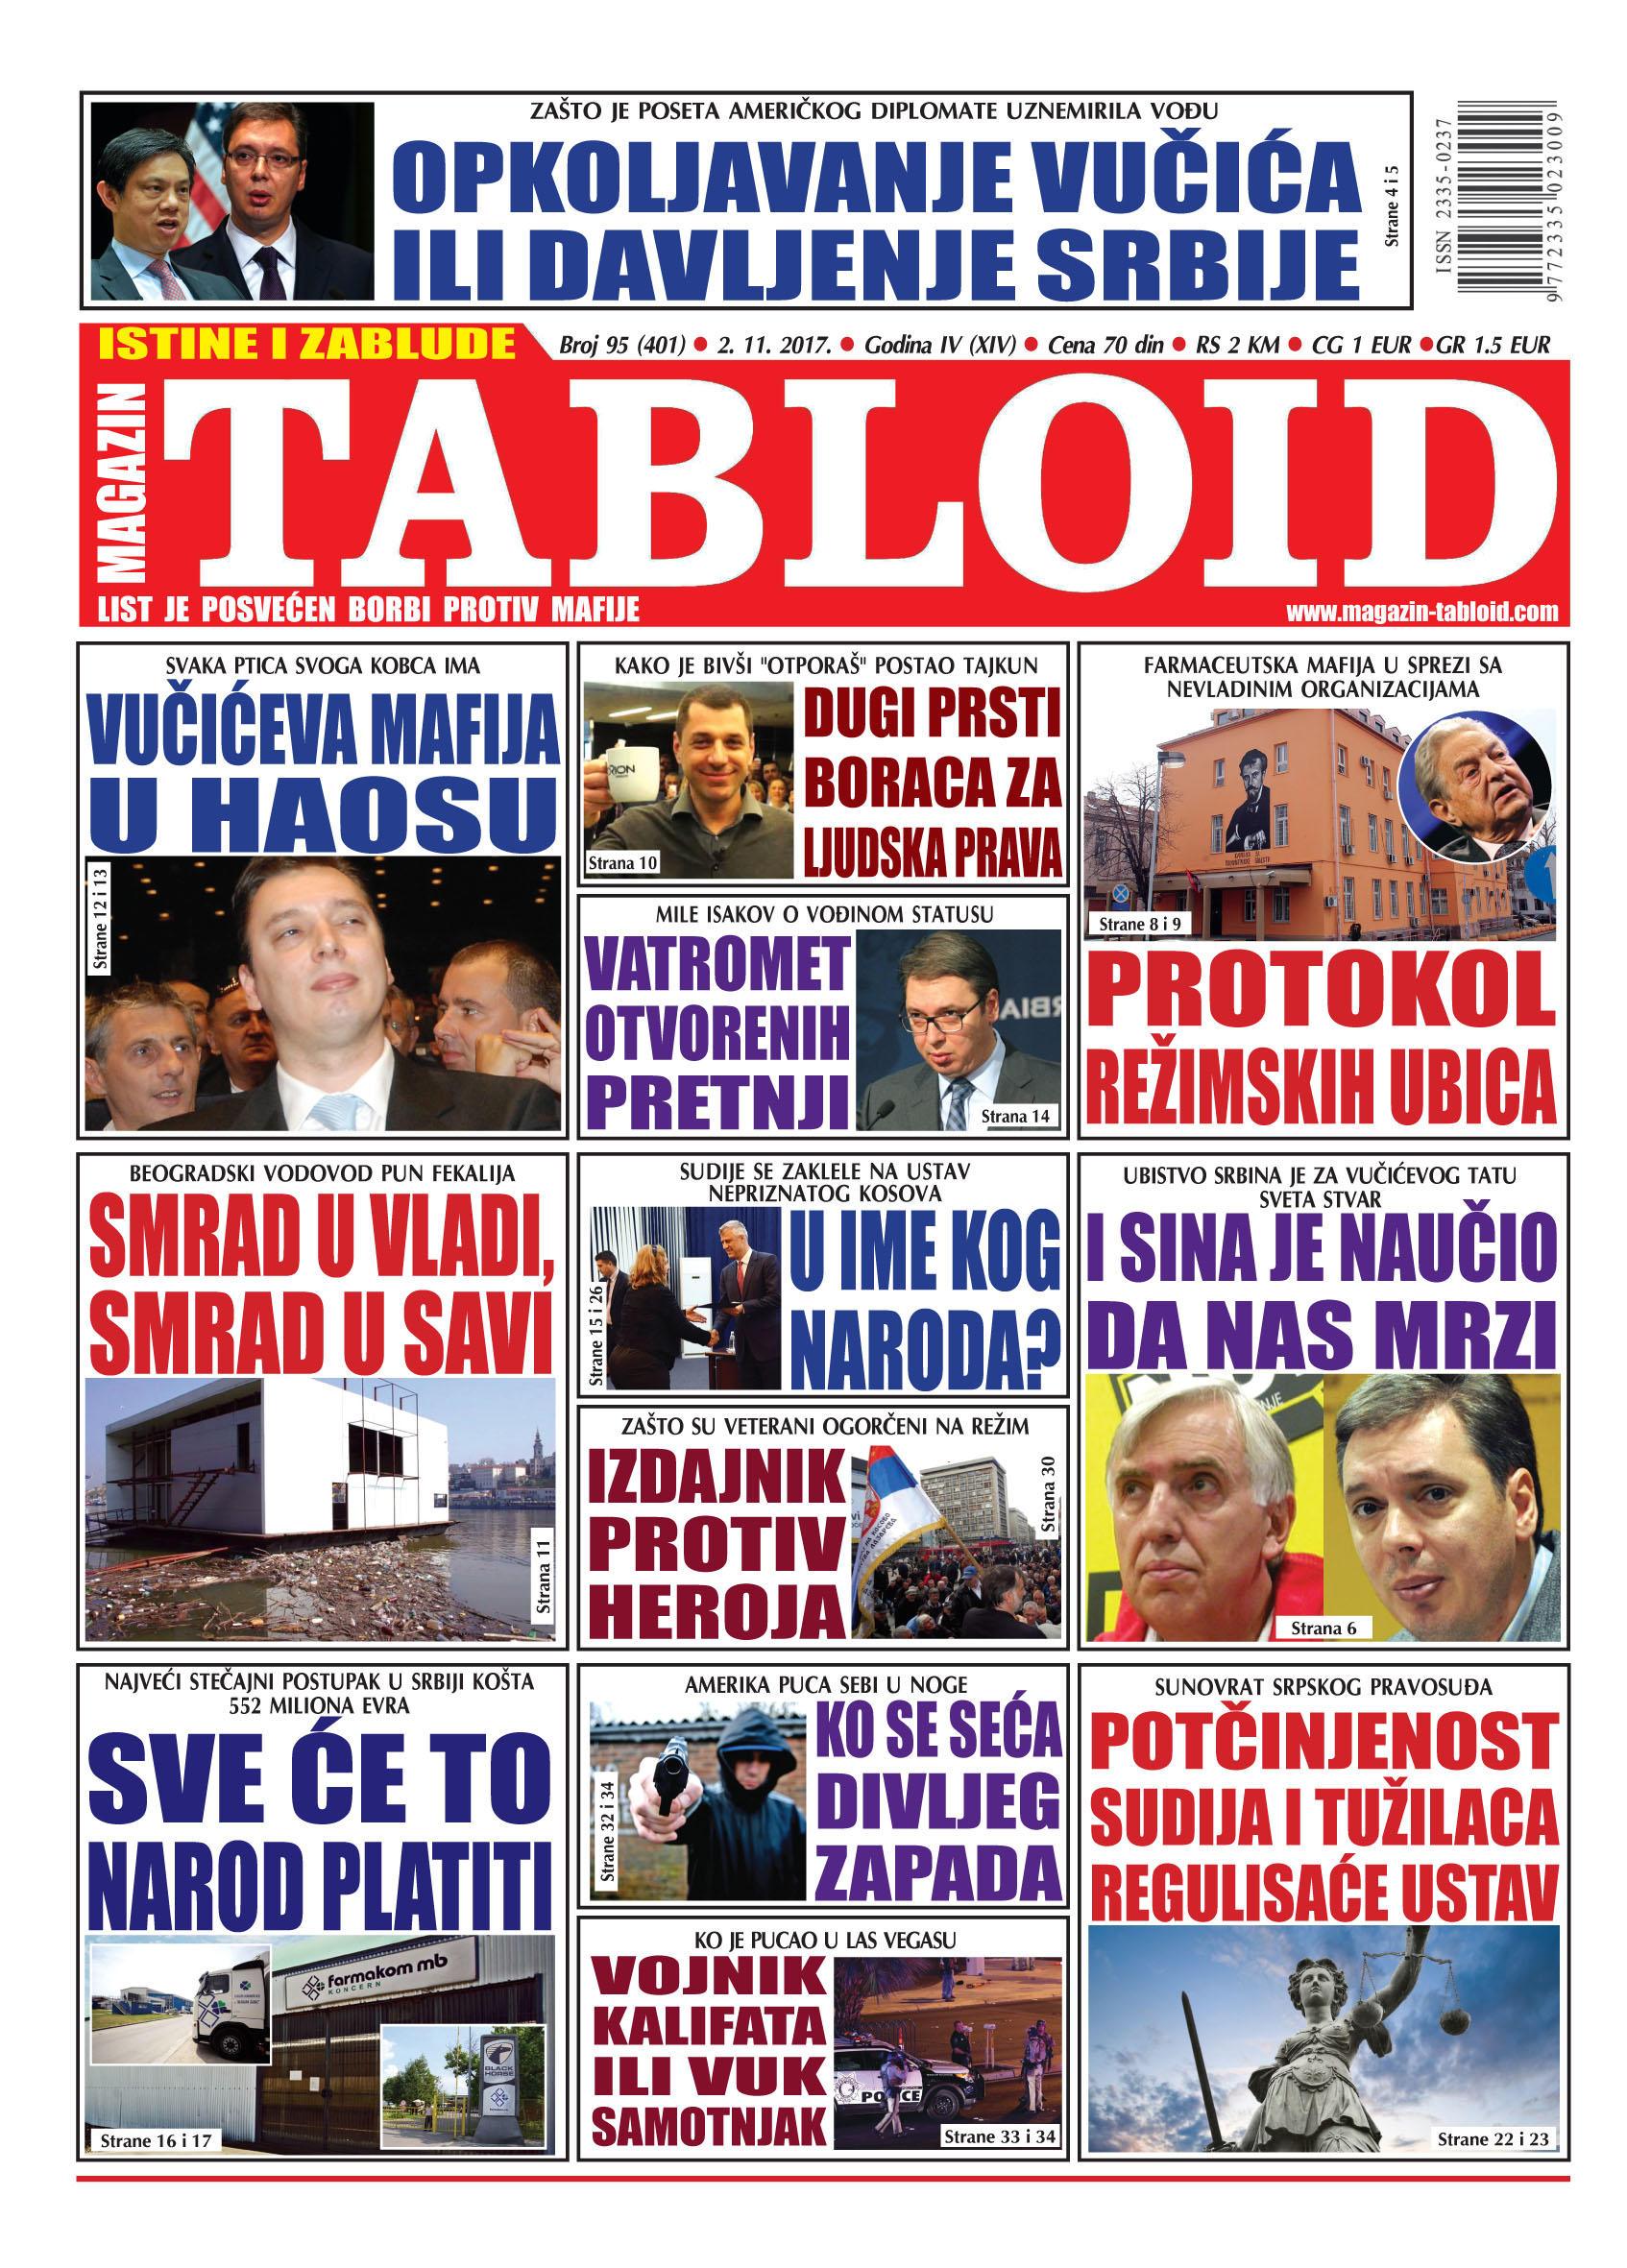 http://magazin-tabloid.com/casopis/